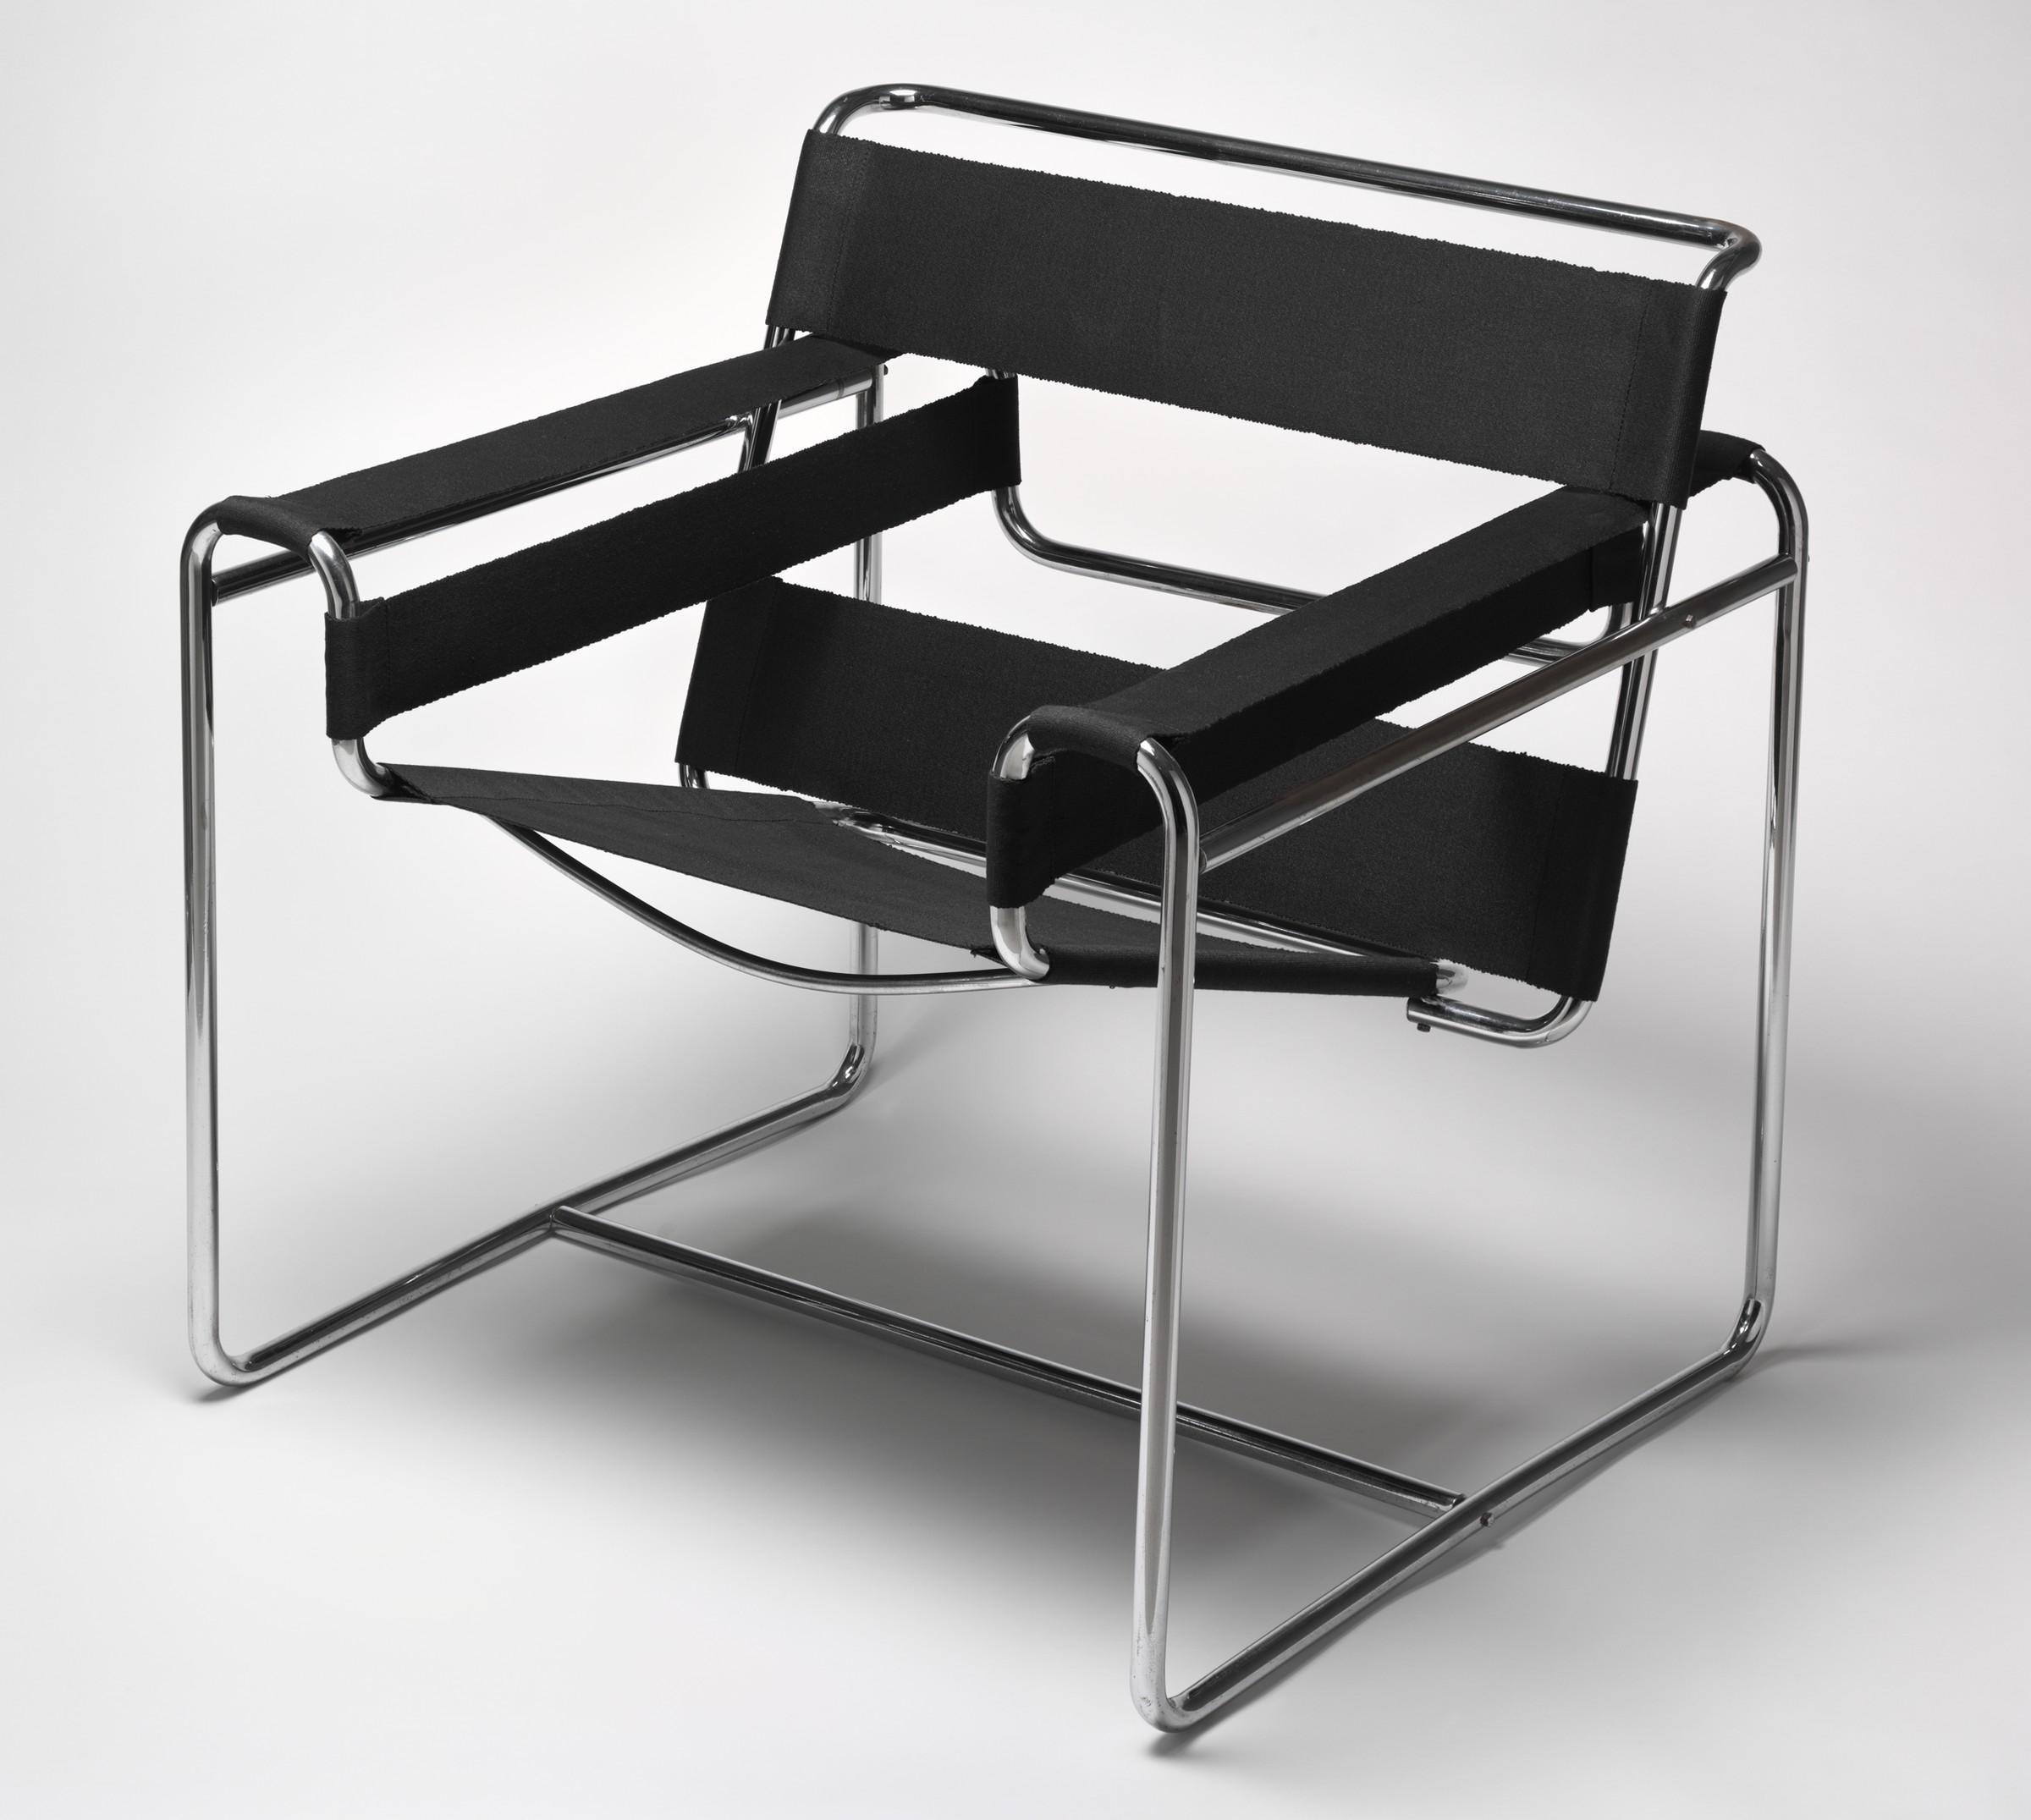 harvard chair for sale portable dental looking forward the bauhaus and index magazine marcel breuer club designed 1925 manufactured 1929 32 nickel